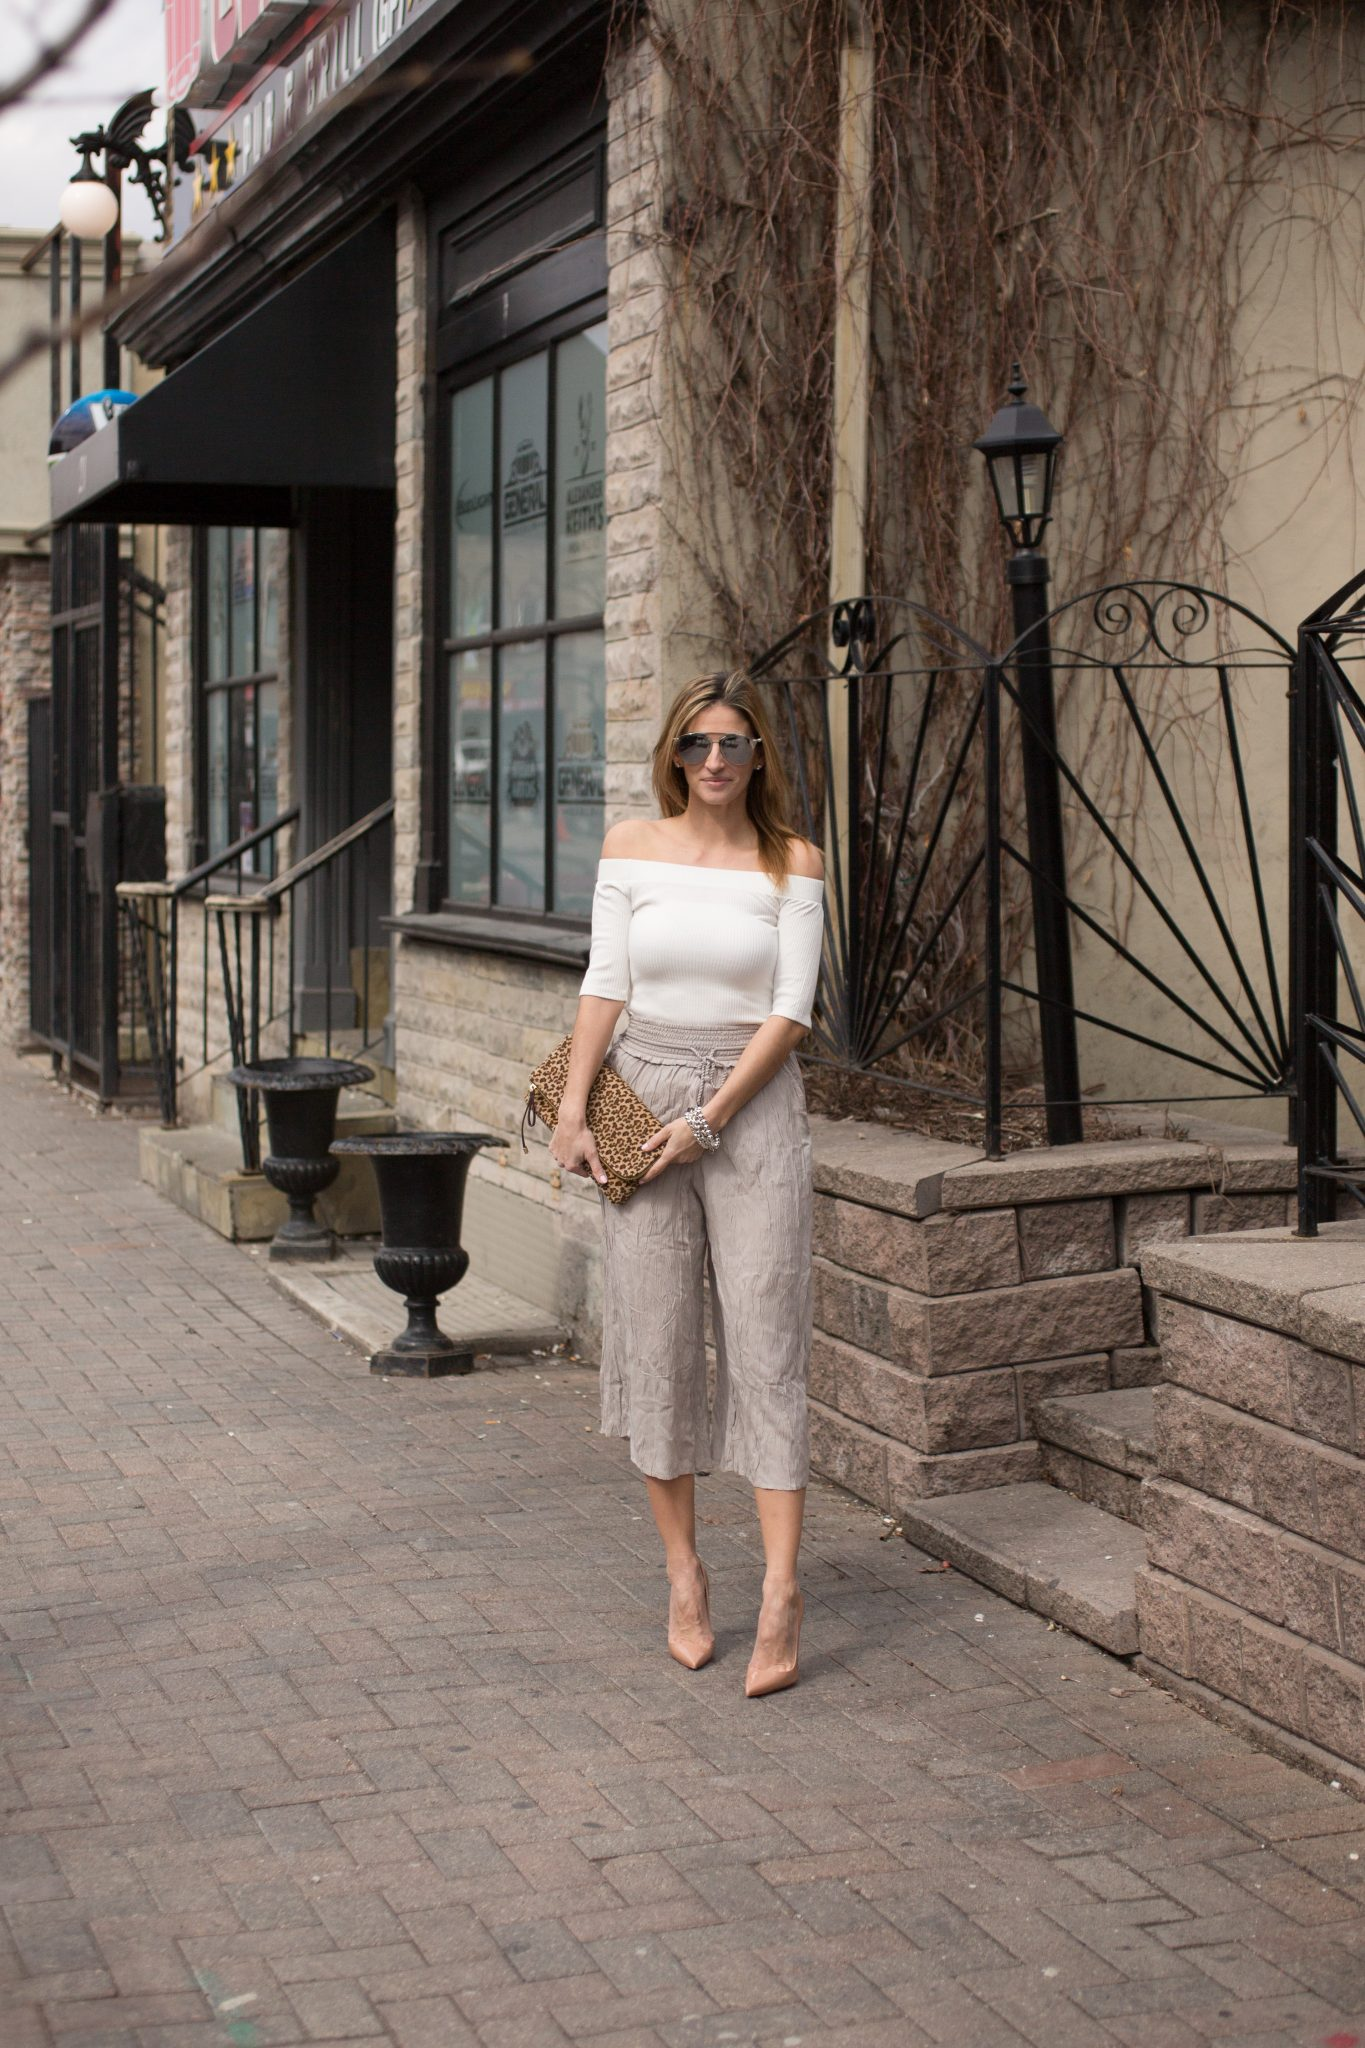 sparkleshinylove Lucky 7 Ribbed Off the Shoulder Top Jean Machine, Wilfred Nanterre pants from Aritzia, Nude Christian Louboutin pumps, Dior So Real Sunglasses, leaopard print clutch from Charming Charlie